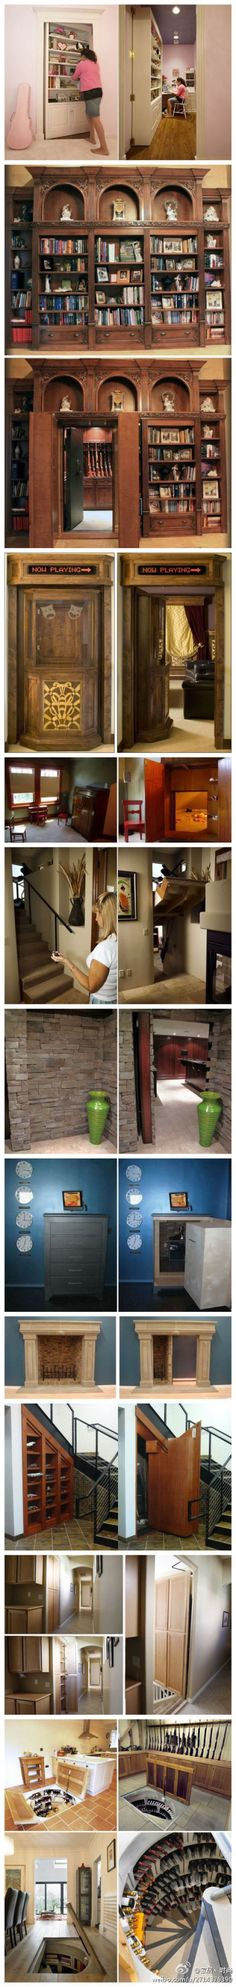 Some pretty good ideas here. I really like the lifting staircase, home theater entrance & storage closet under the stairs.